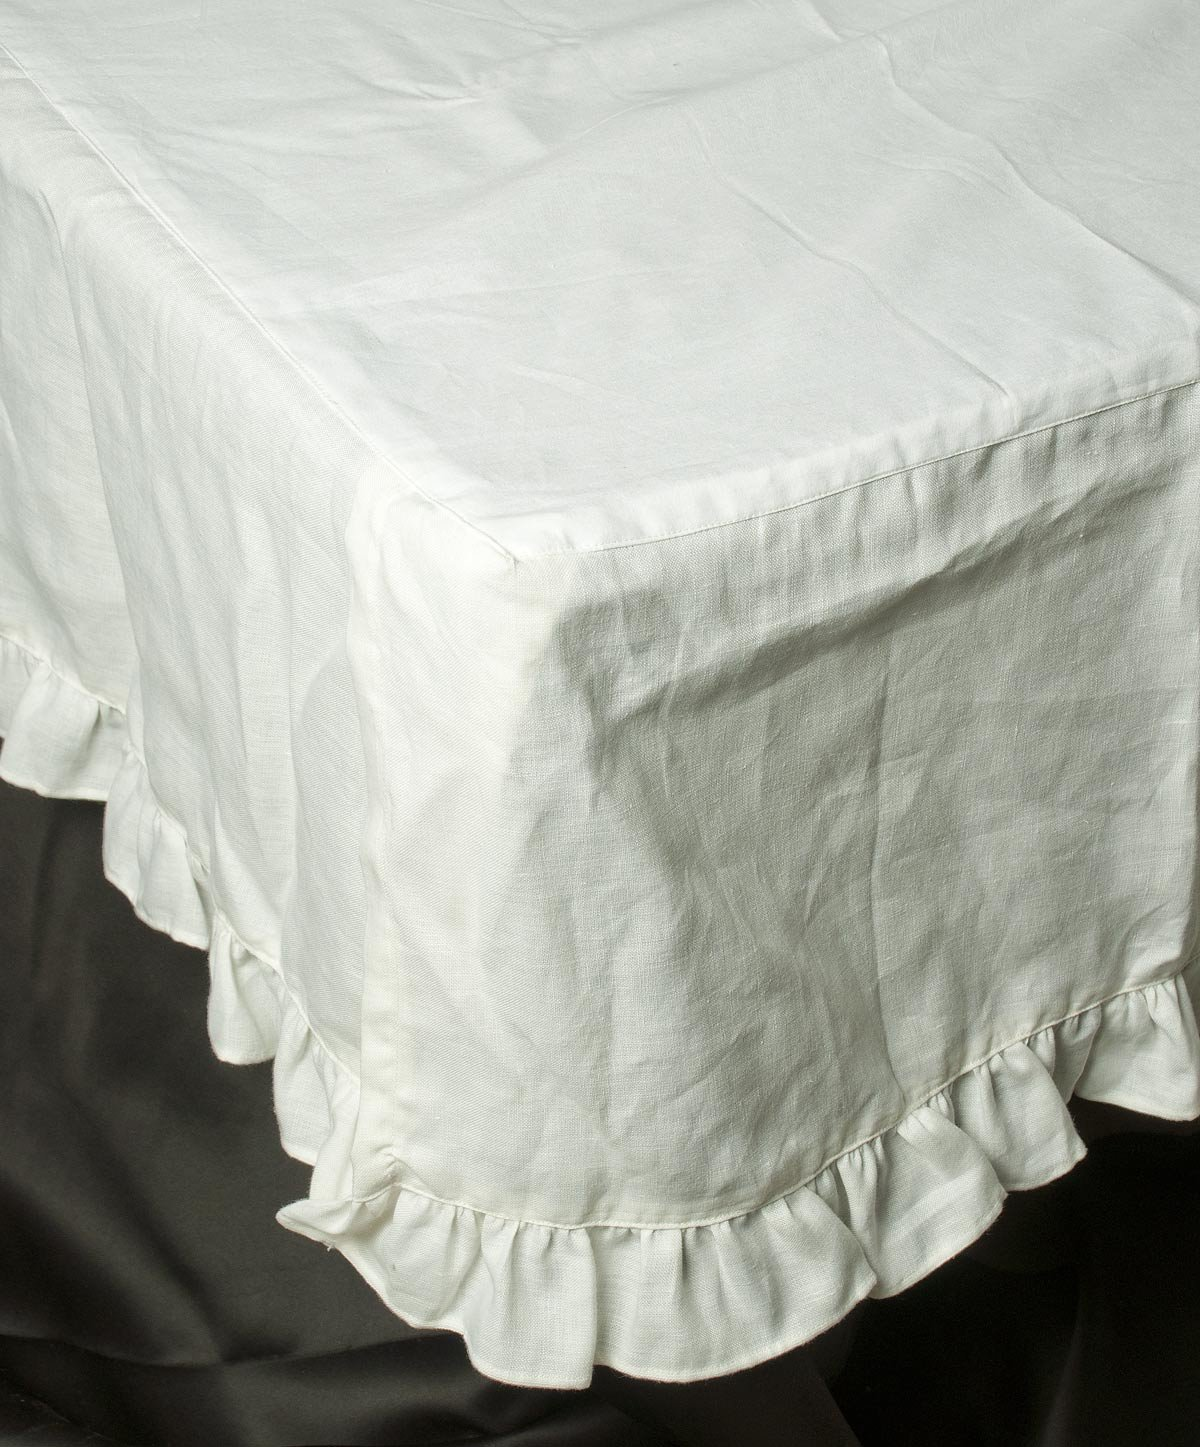 White organic linen frilled bordered bed skirt or dust ruffles 18'' drop as bedding sets (Queen Size (60''W X 80''L X 18''H)